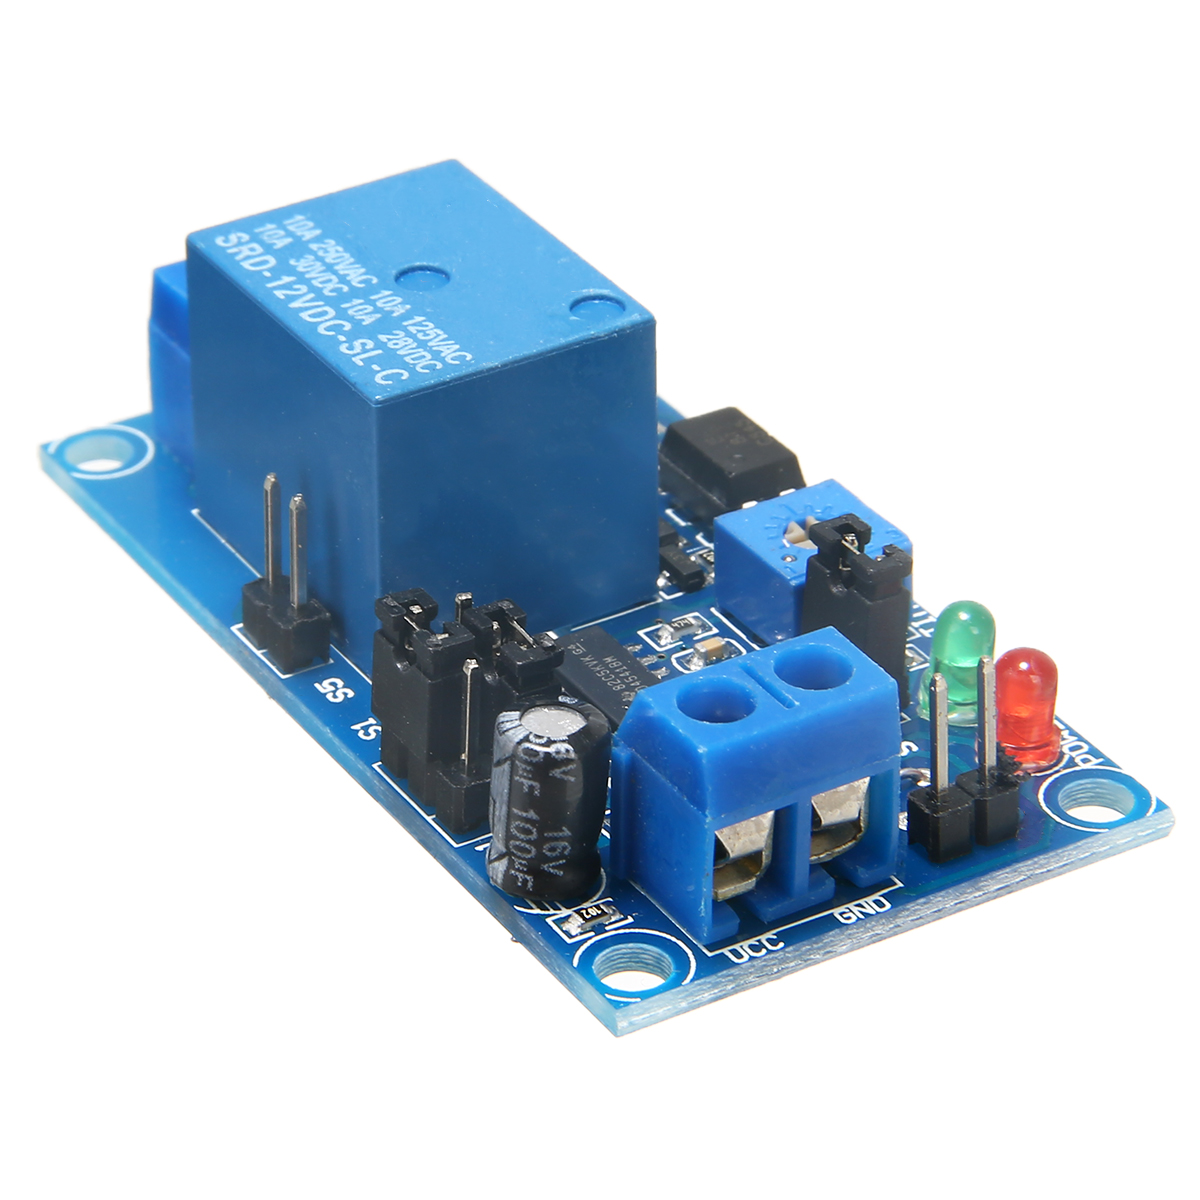 1pc DC 12V Time Delay Relay Module Circuit Timer Timing Board Switch Trigger Control Module